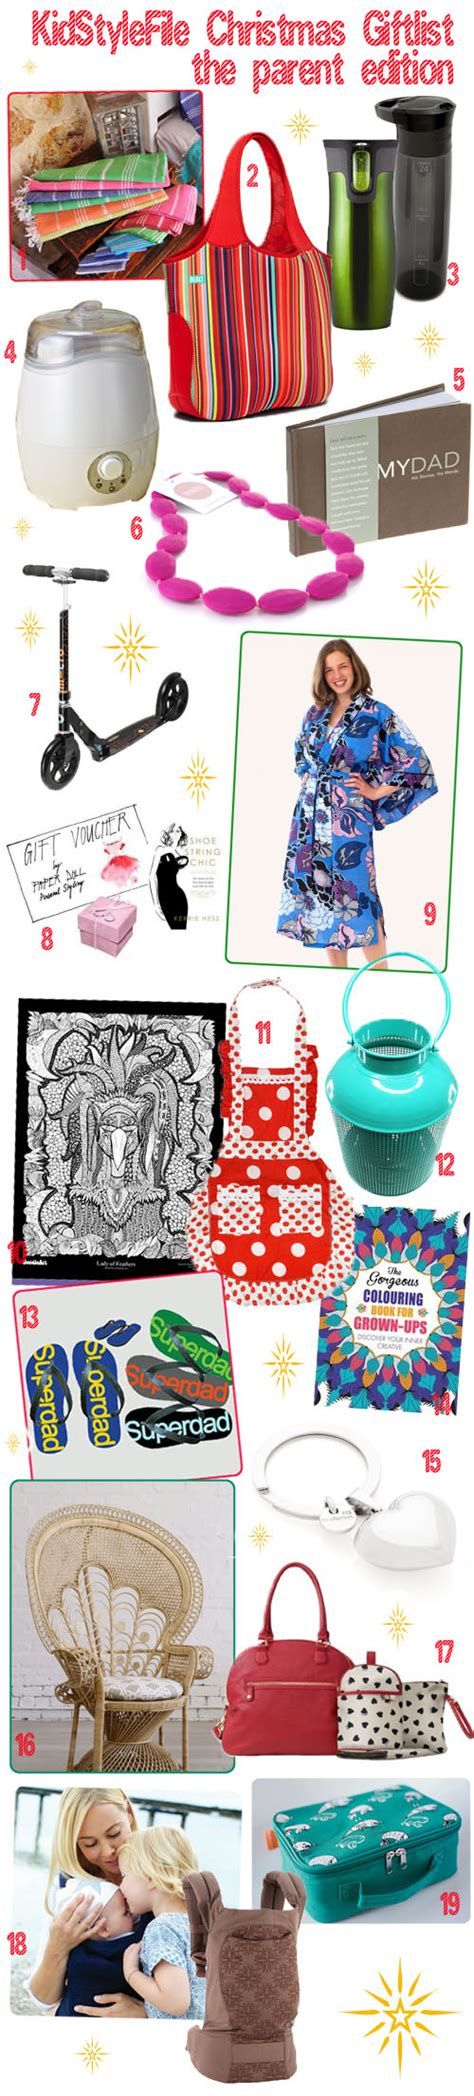 the kidstylefile kids christmas gift guide 2013 best